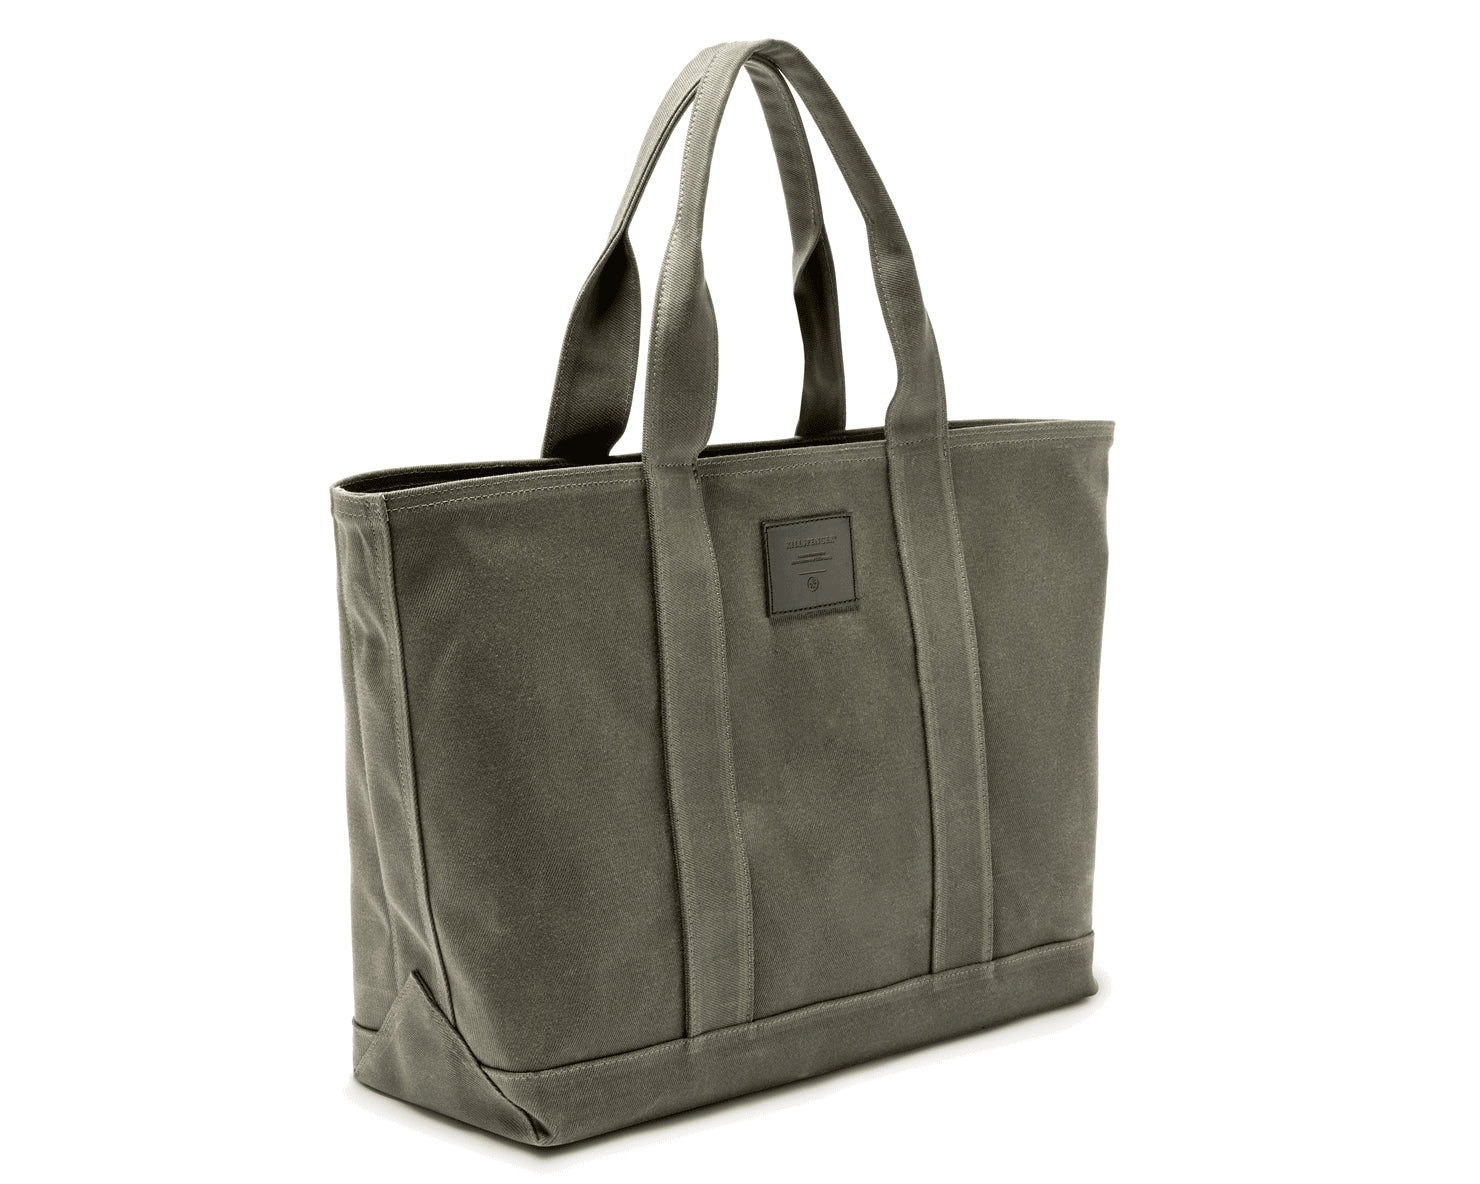 MEGA TOTE | KILLSPENCER® - Korean War Era Waxed Canvas